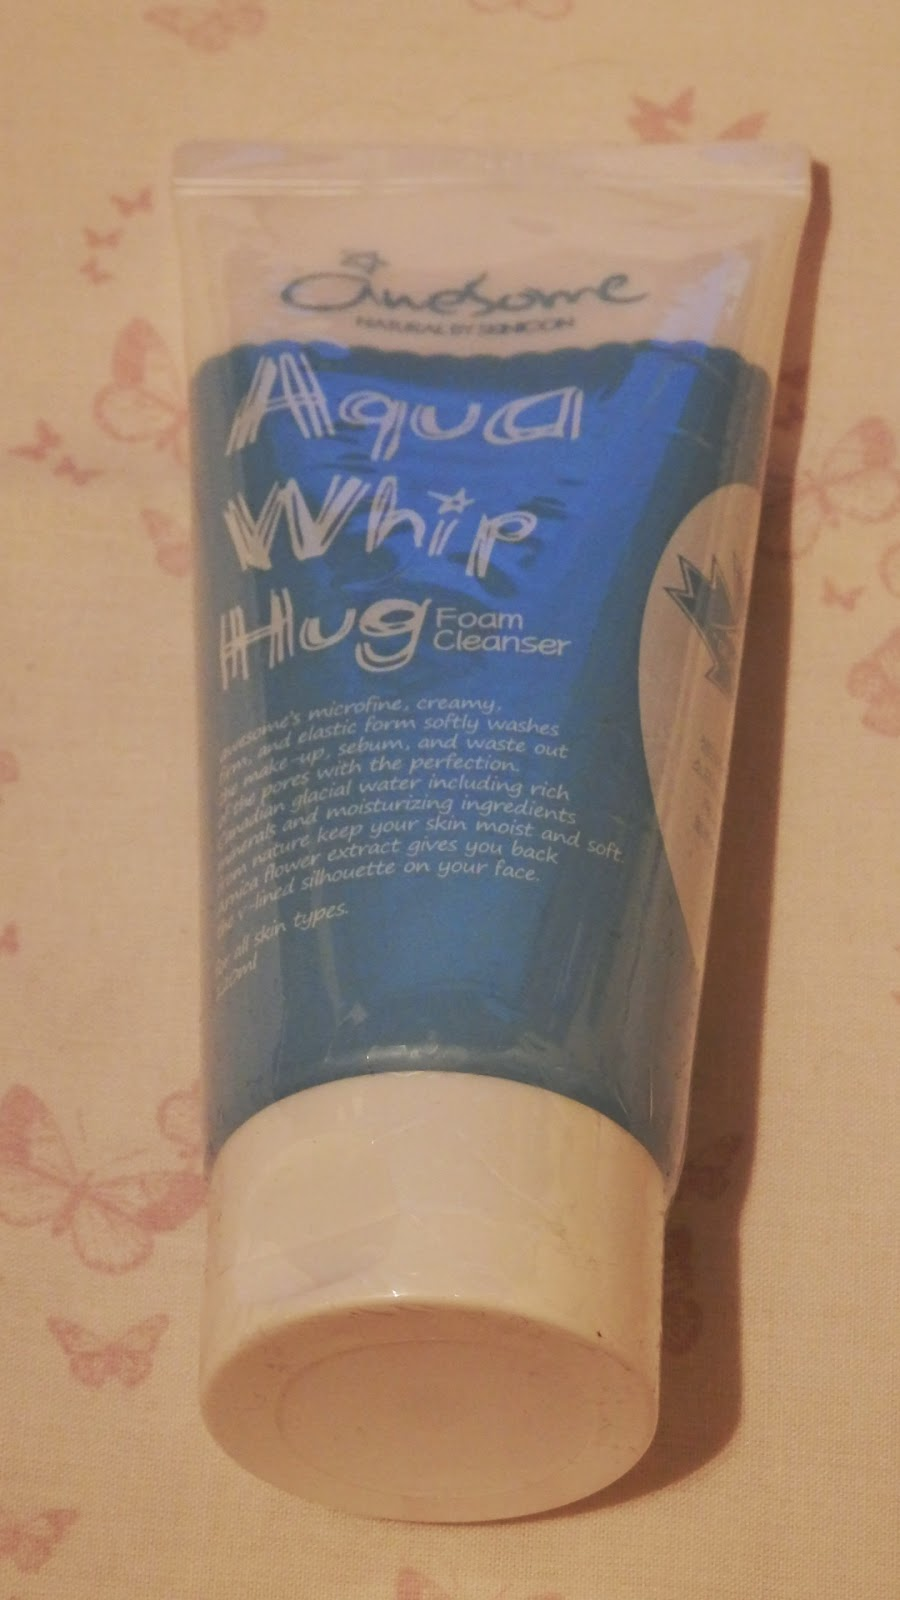 Memebox Special #13 Cooling Care Awesome Aqua Whip Hug Foam Cleanser